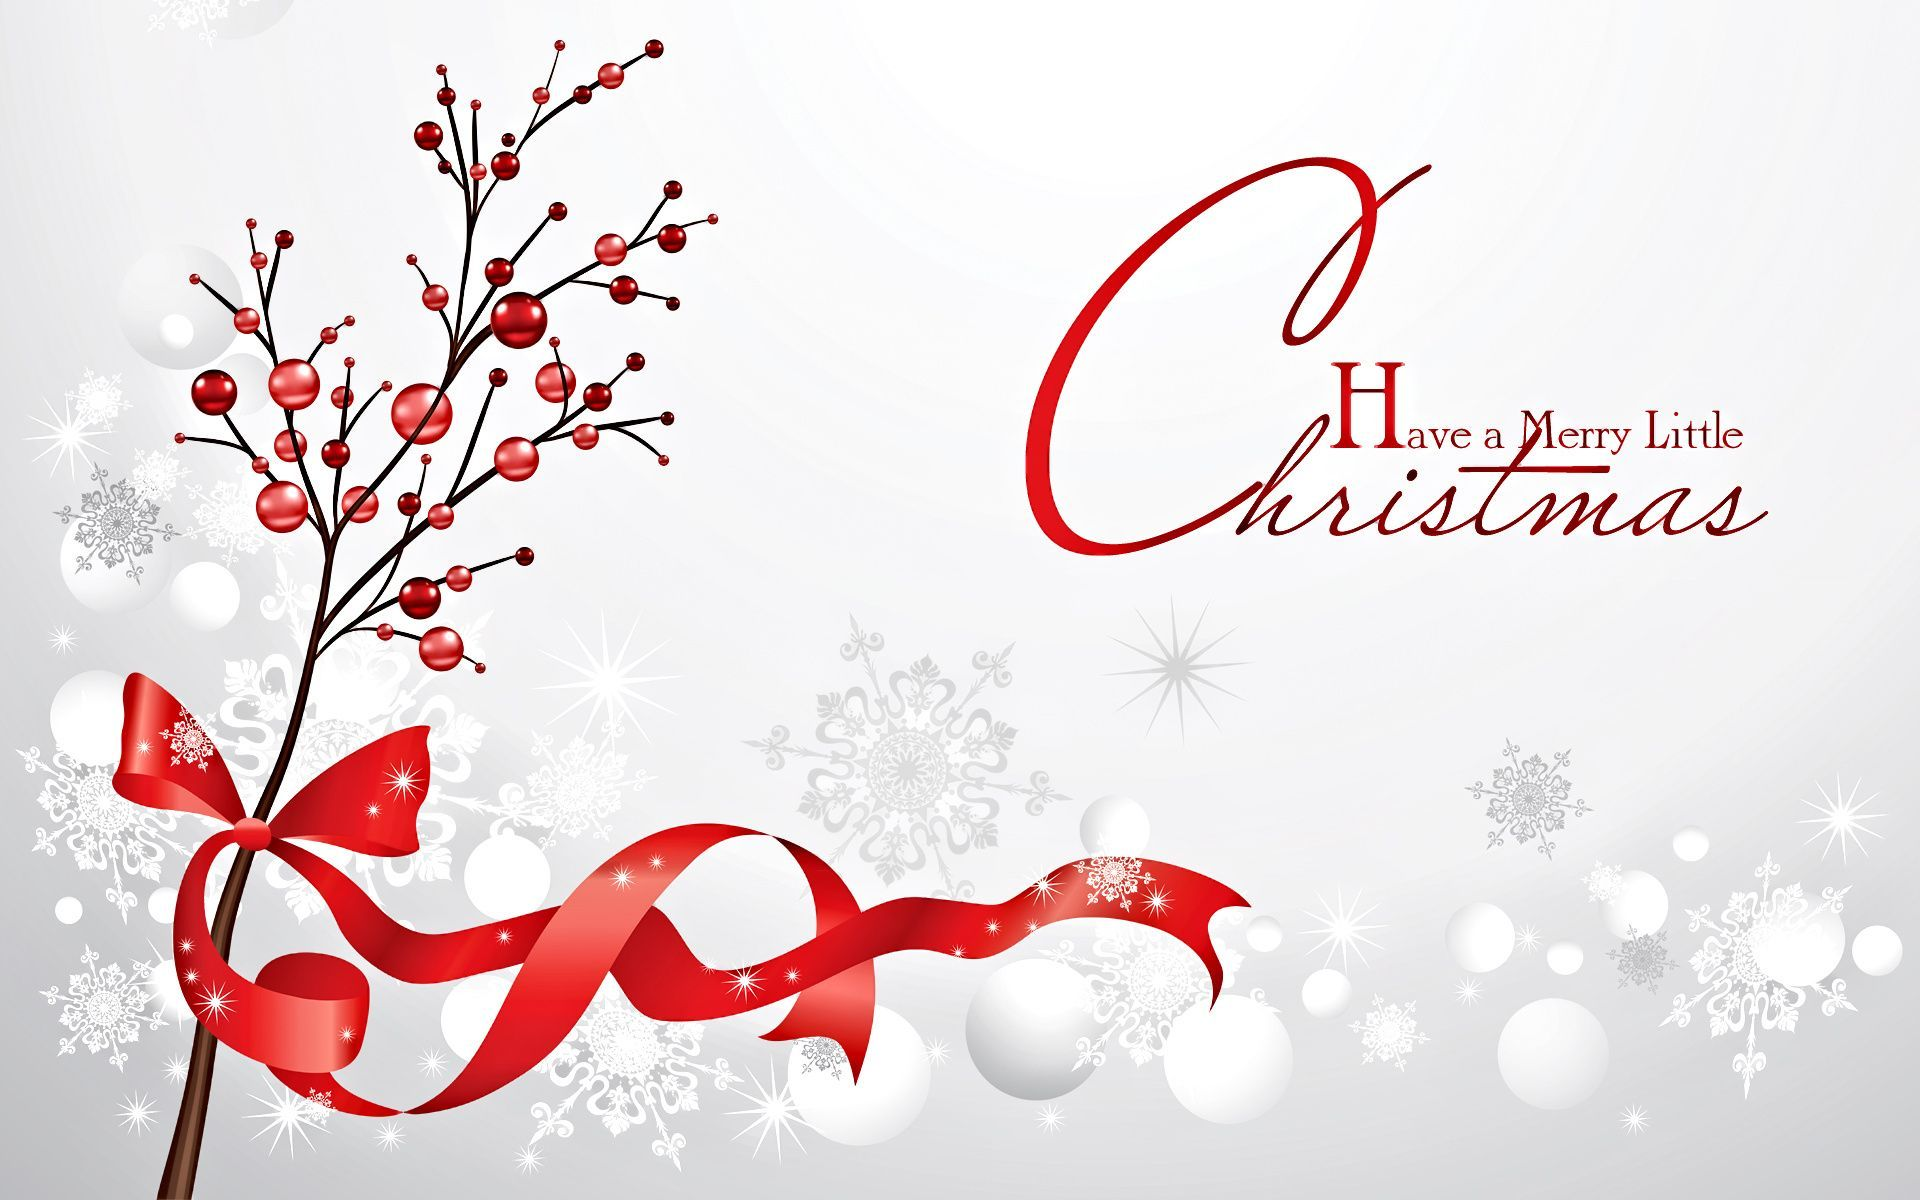 happy merry christmas red balls cute hd wallpaper